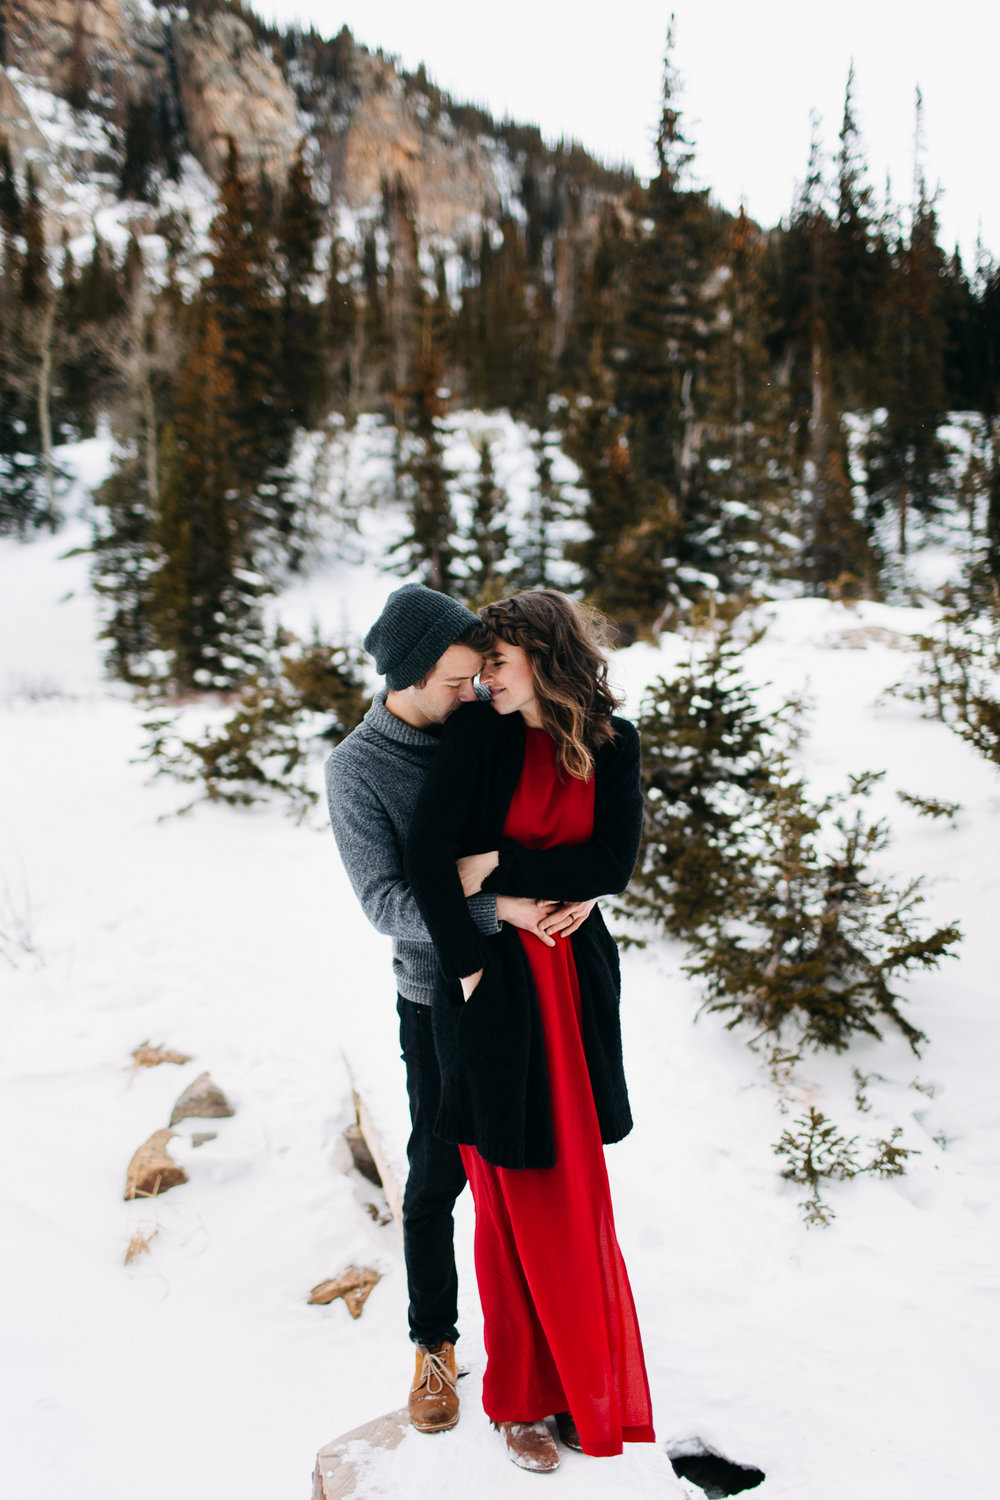 Copy of LEXIE + JAKE | WINTER ADVENTURE SESSION AT DREAM LAKE IN ROCKY MOUNTAIN NATIONAL PARK